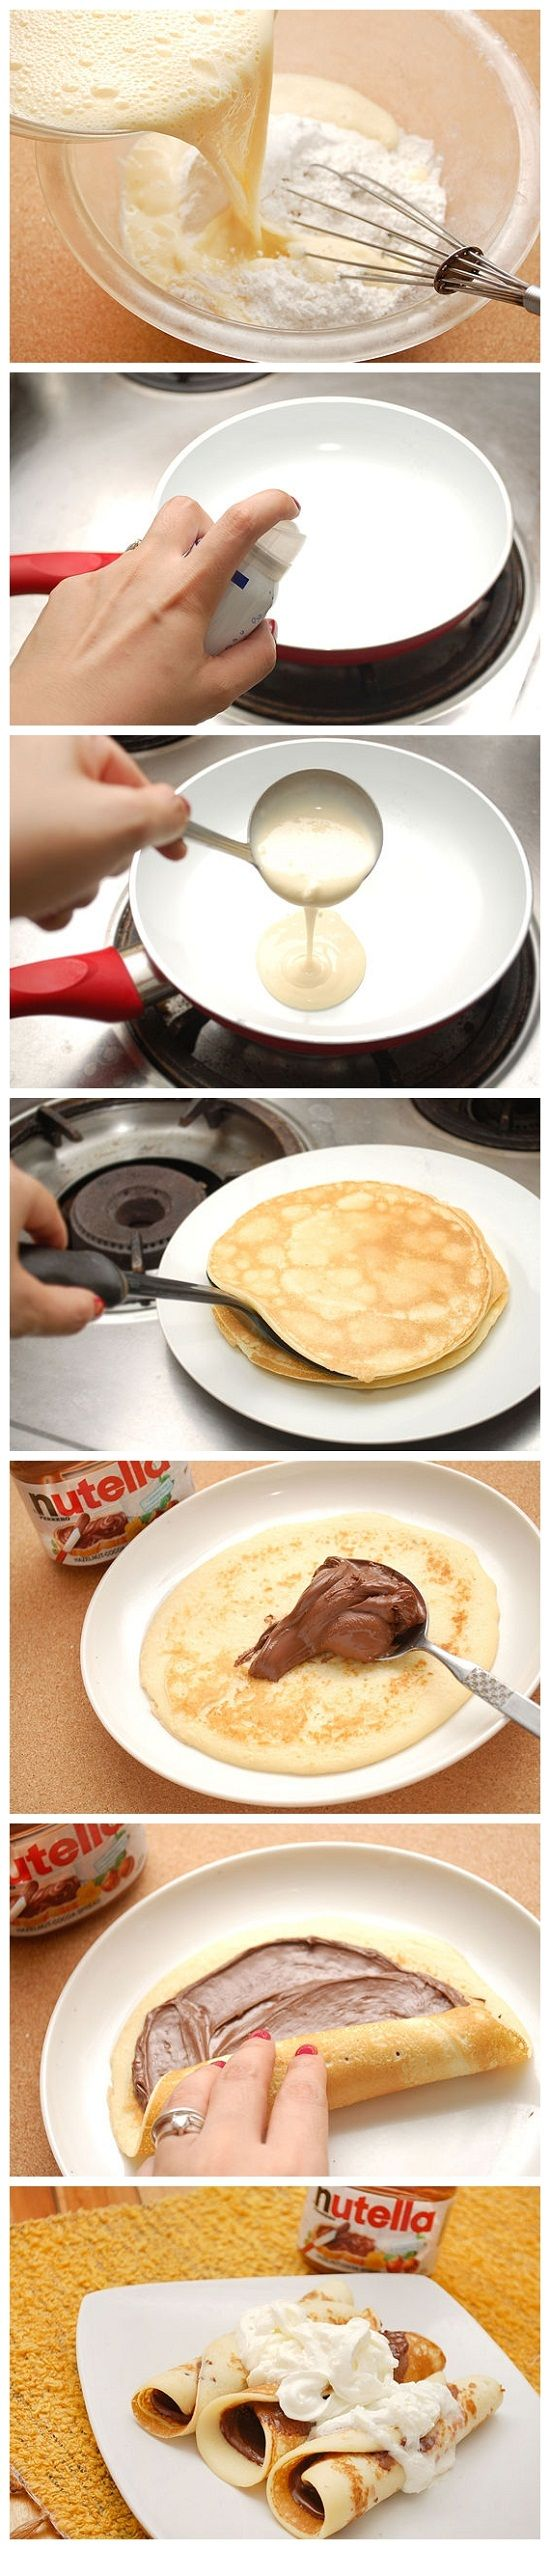 Great presentation sequence to make best Crepes w/ #Nutella